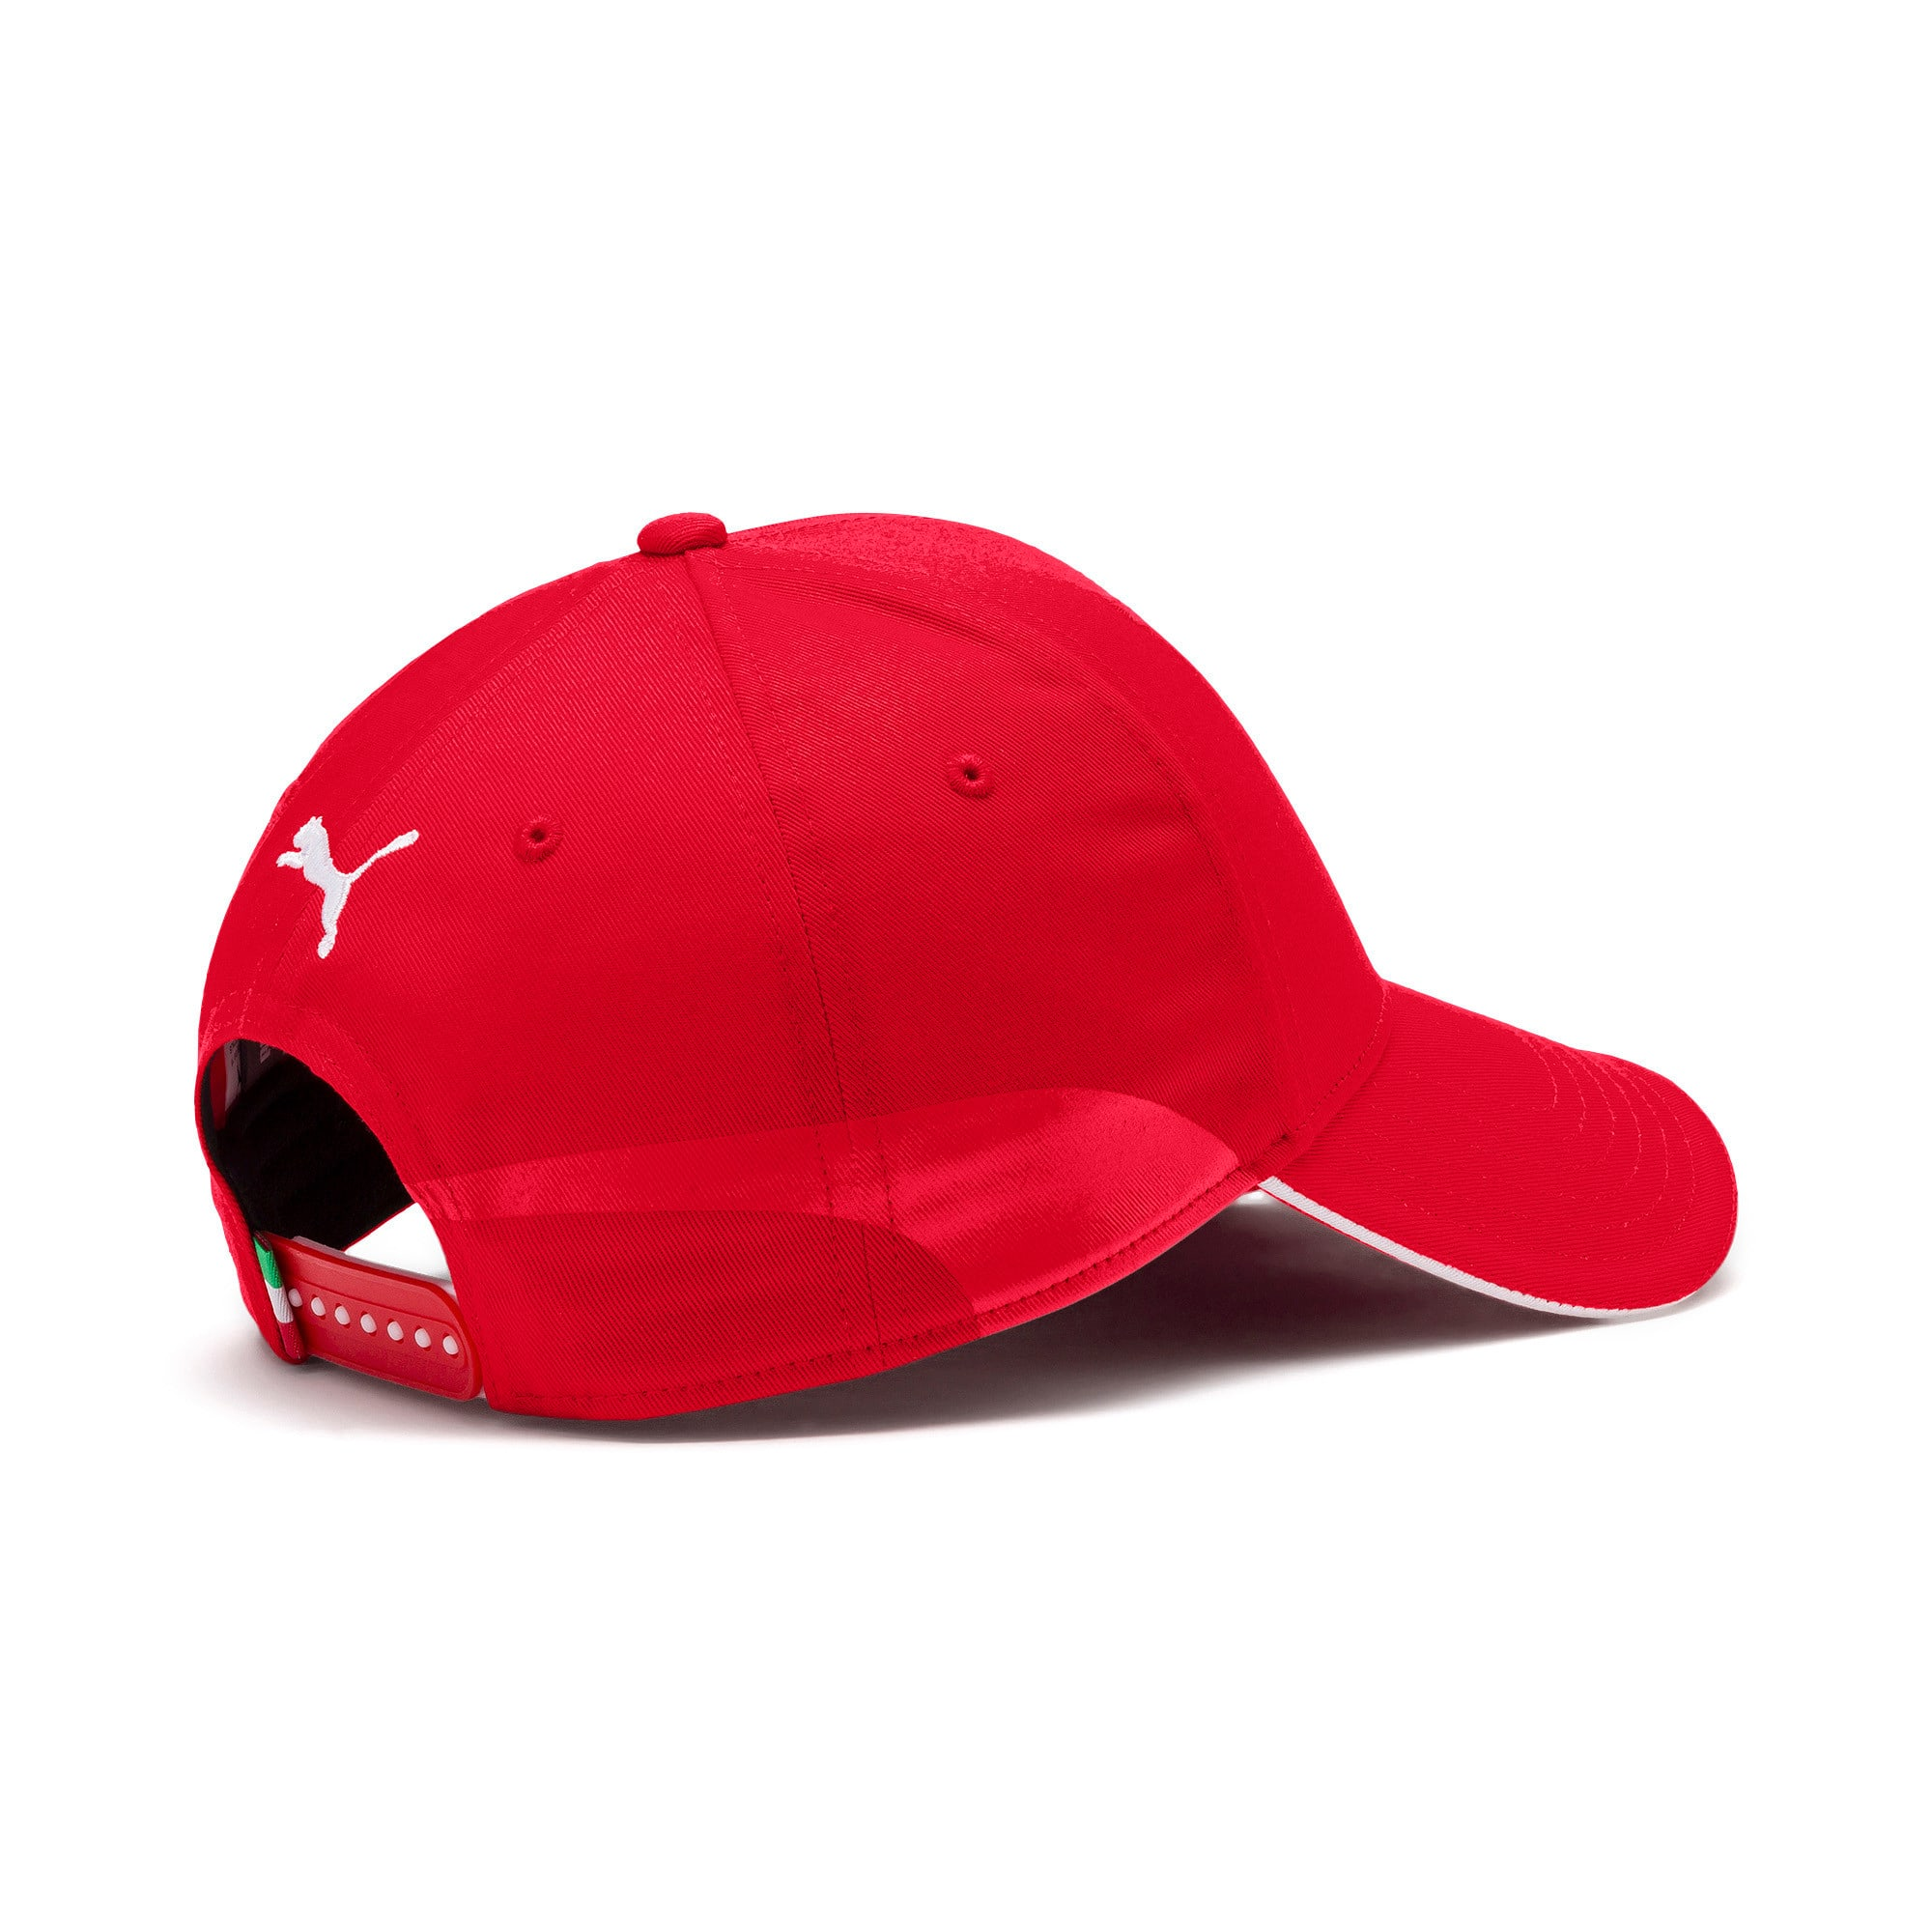 Thumbnail 2 of Ferrari Fanwear Cap, Rosso Corsa, medium